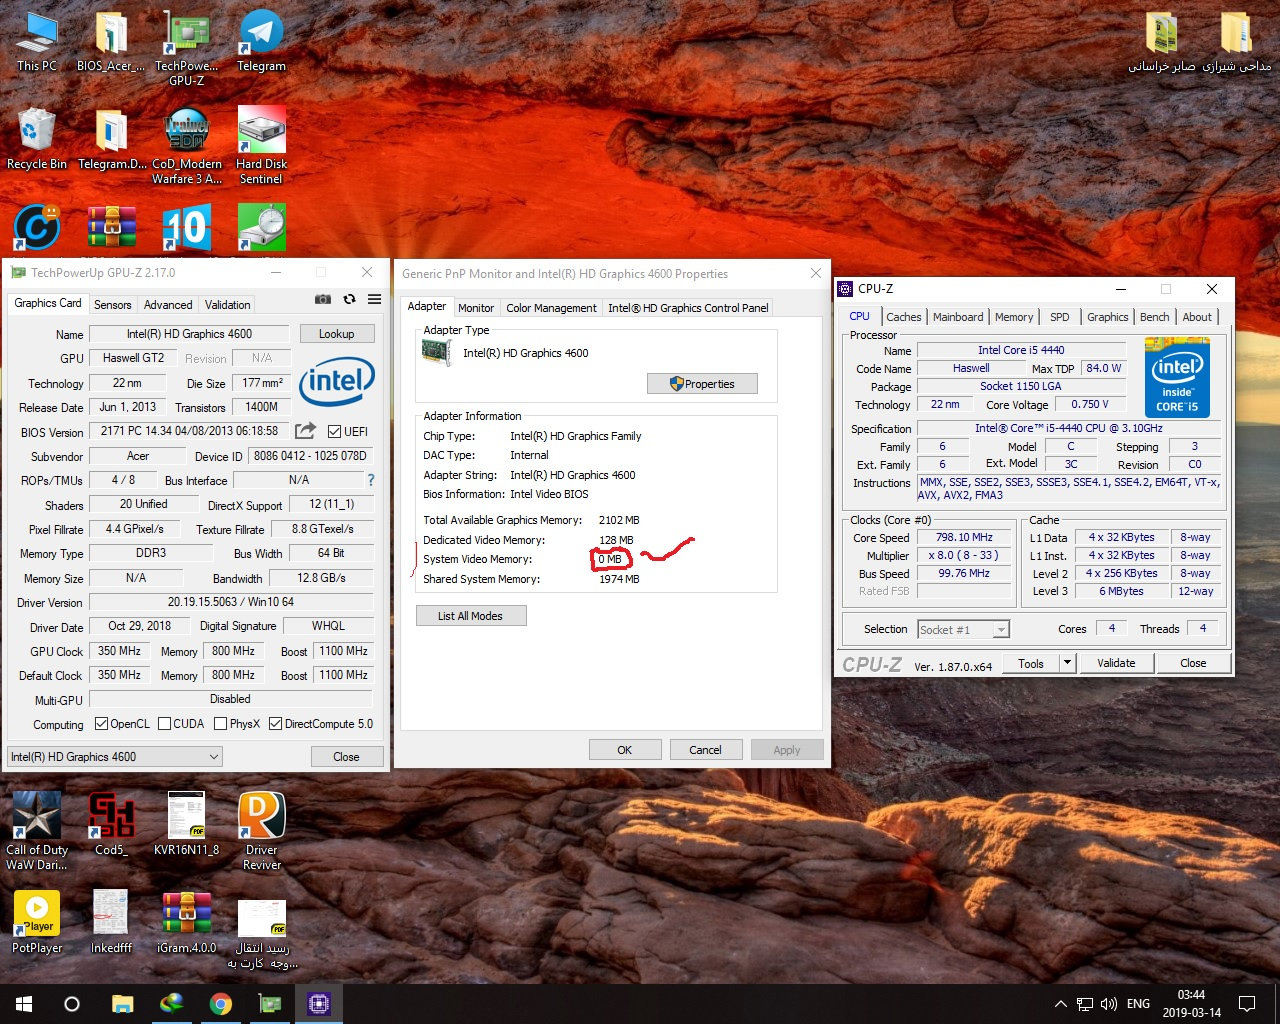 system video memory 0 mb ????!!!! — Acer Community